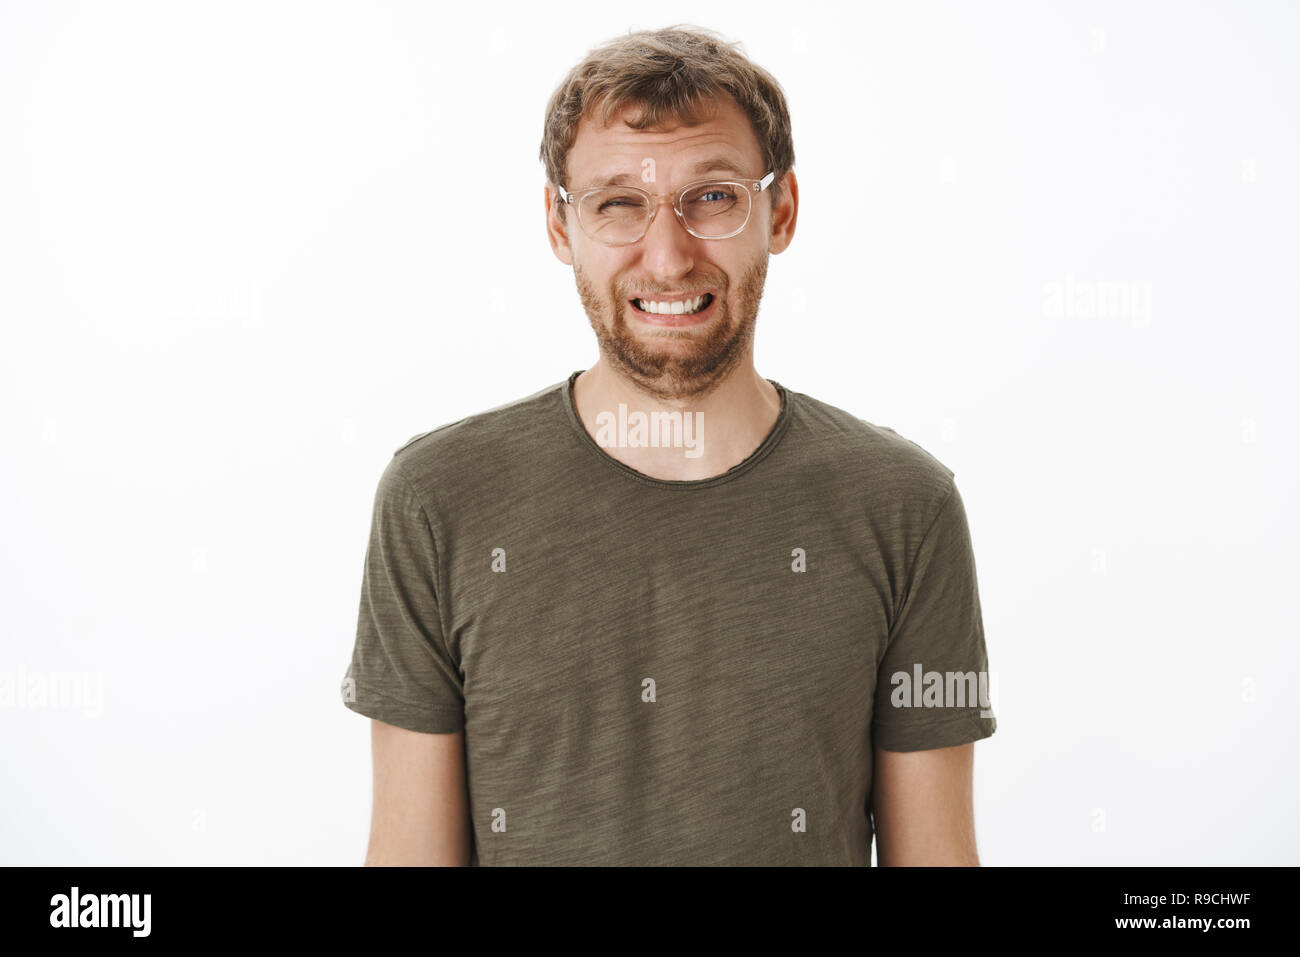 Guy squinting and making funny face eating sour lemon frowning and wrinkling nose standing disgusted and dissatisfied over white background in transparent glasses and green t-shirt - Stock Image